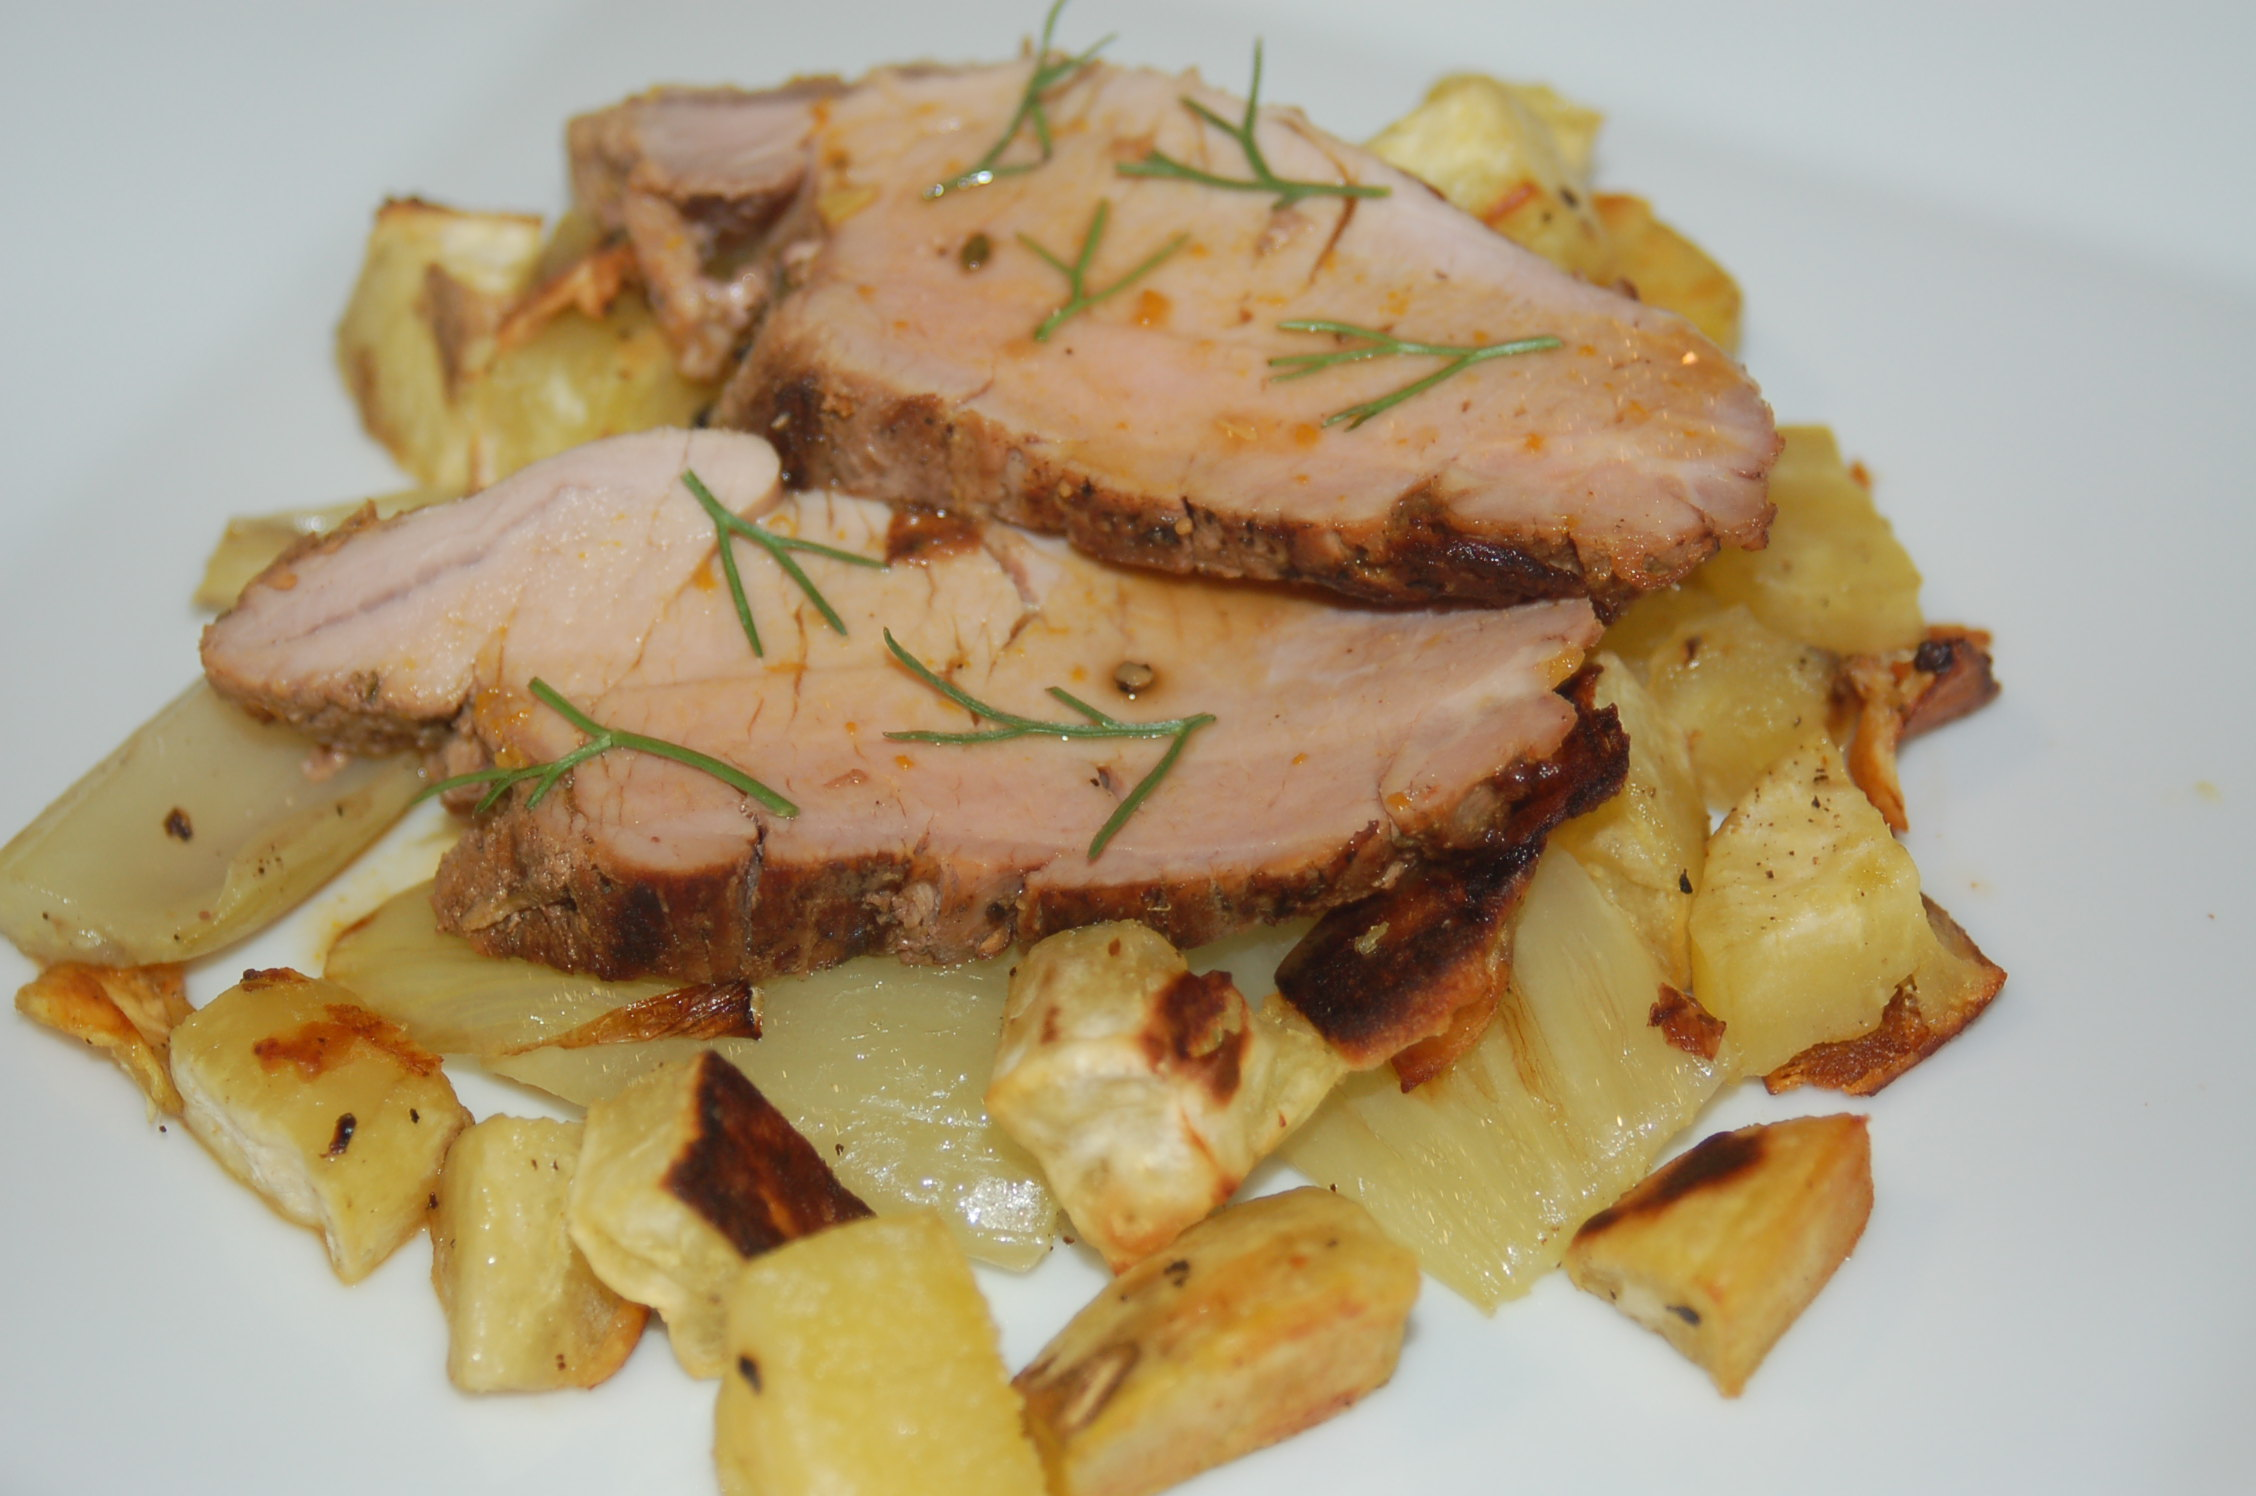 ... and Rosemary Roast Pork Tenderloin with Fennel and Sweet Potatoes